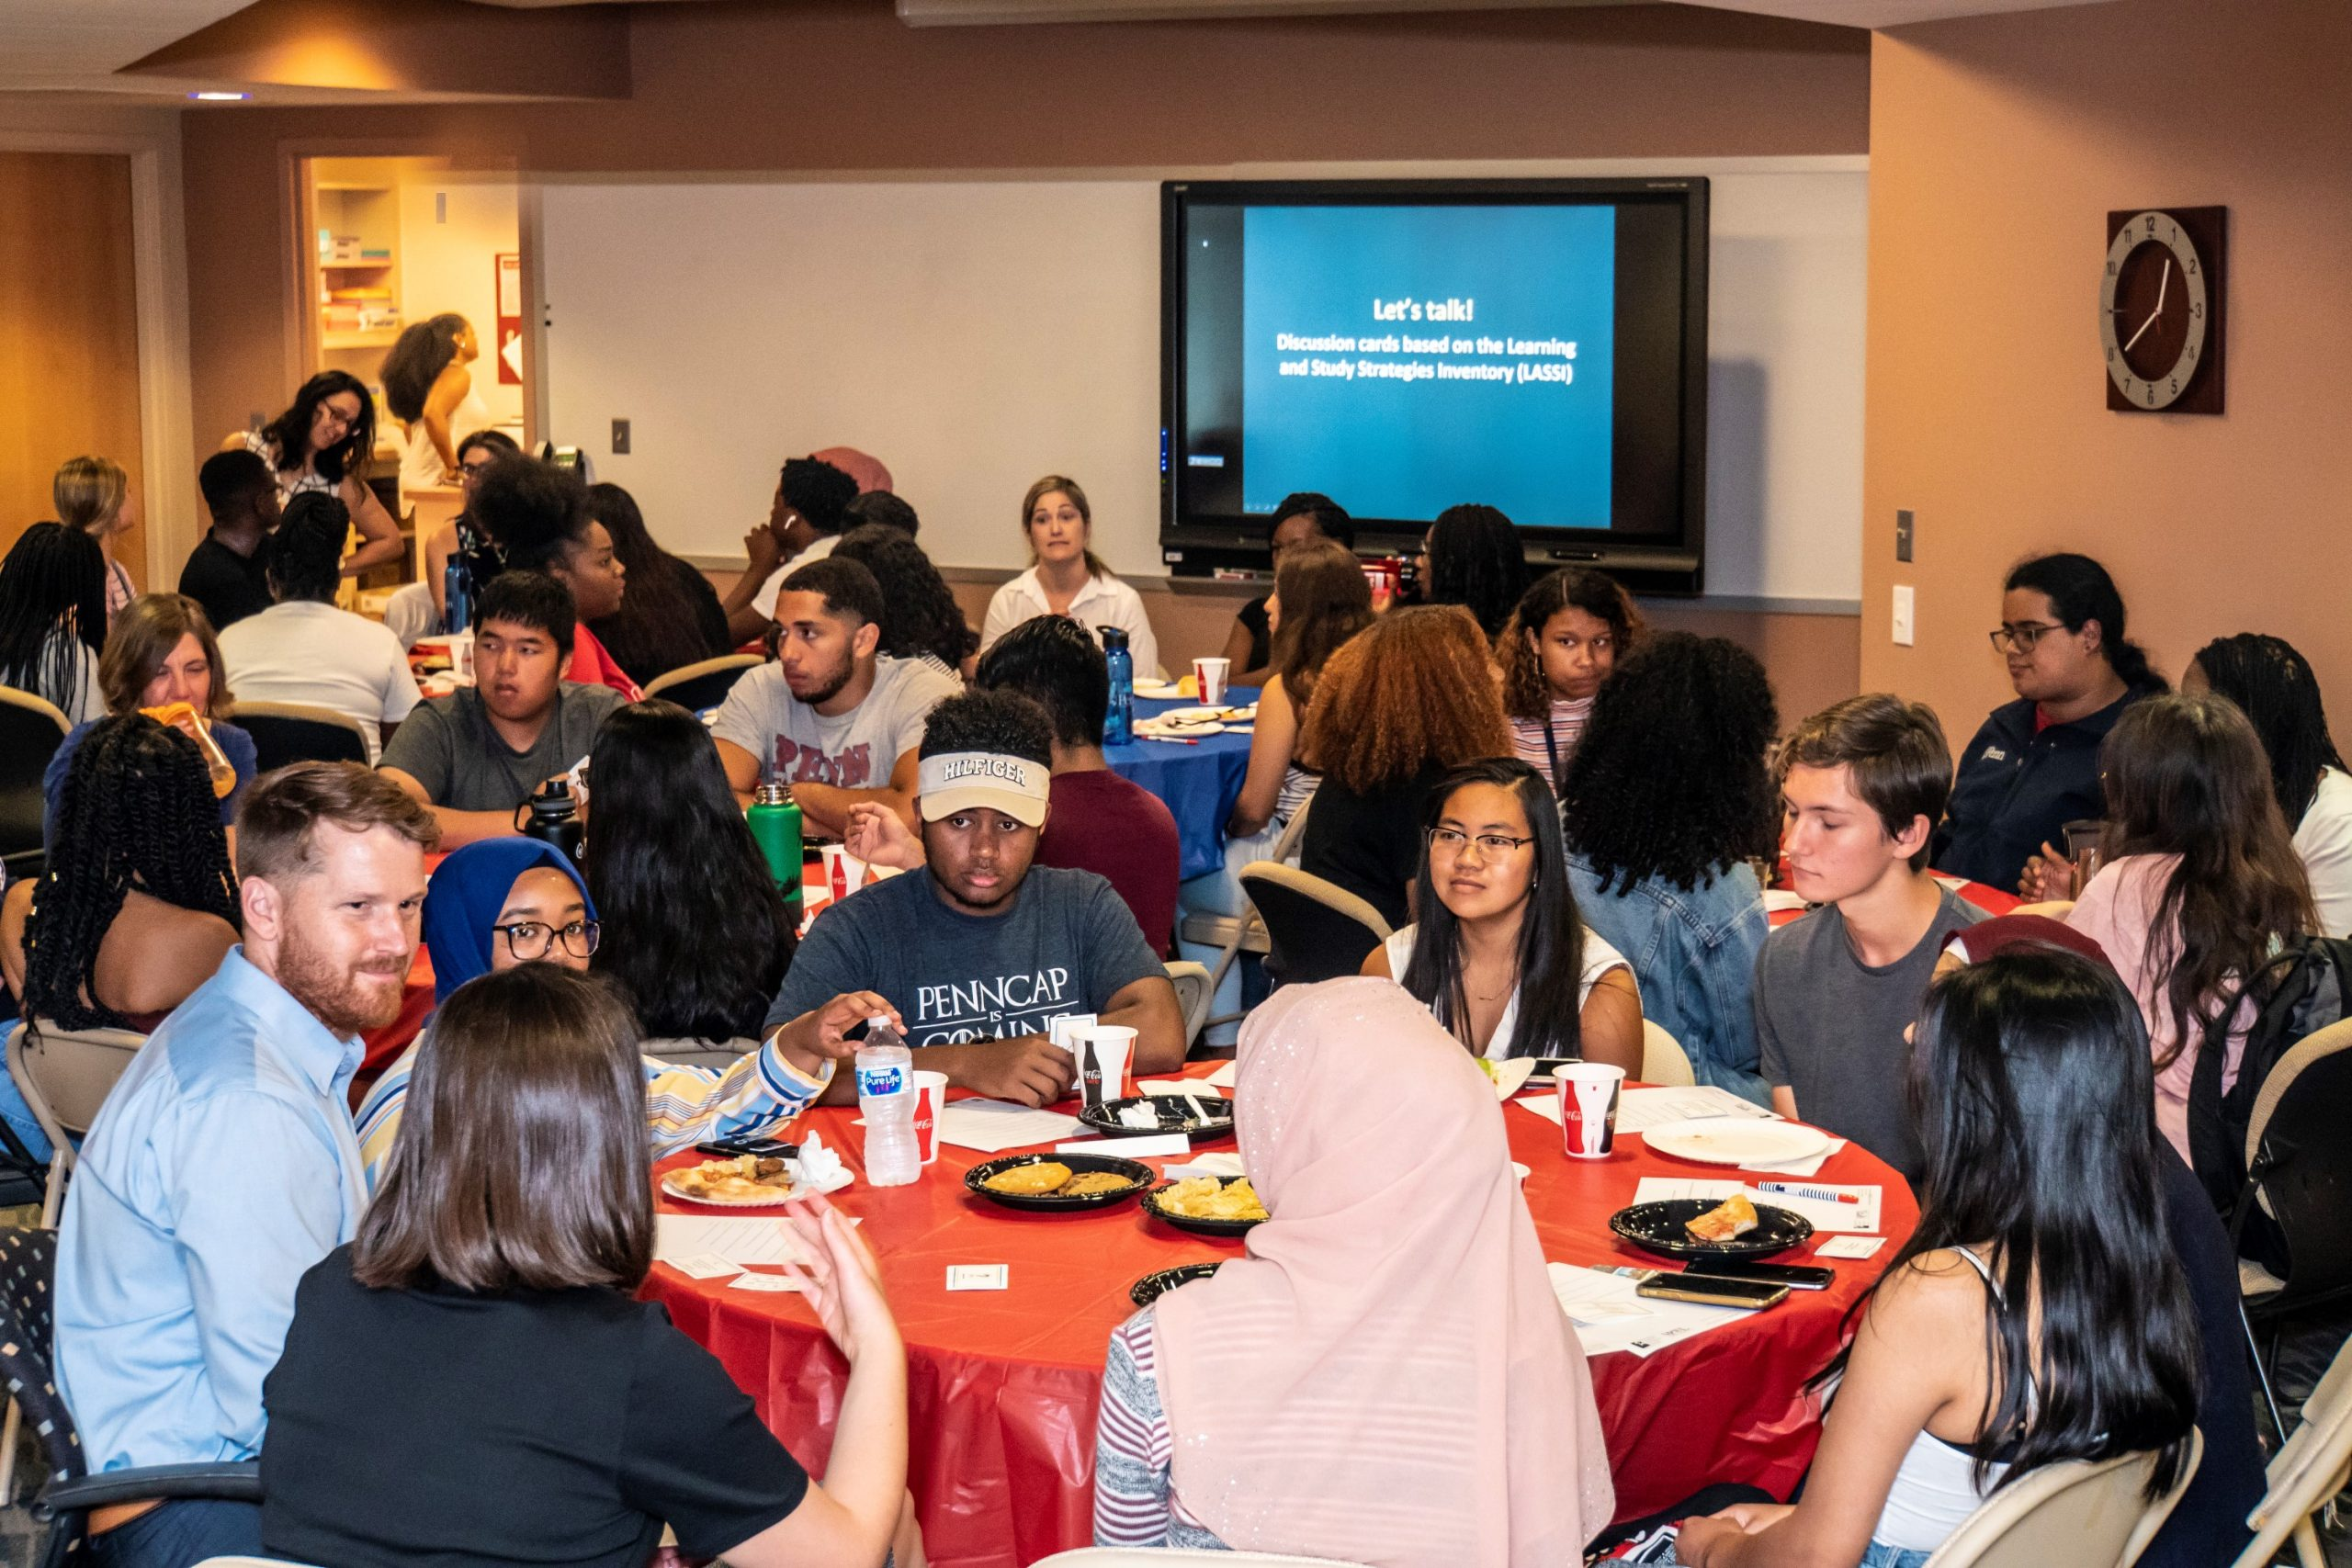 Ryan Miller (left front) meets with students in August 2019, when the Weingarten Center collaborated with PennCAP to host students participating in the Pre-Freshman Program. (Image: Steve McCann)